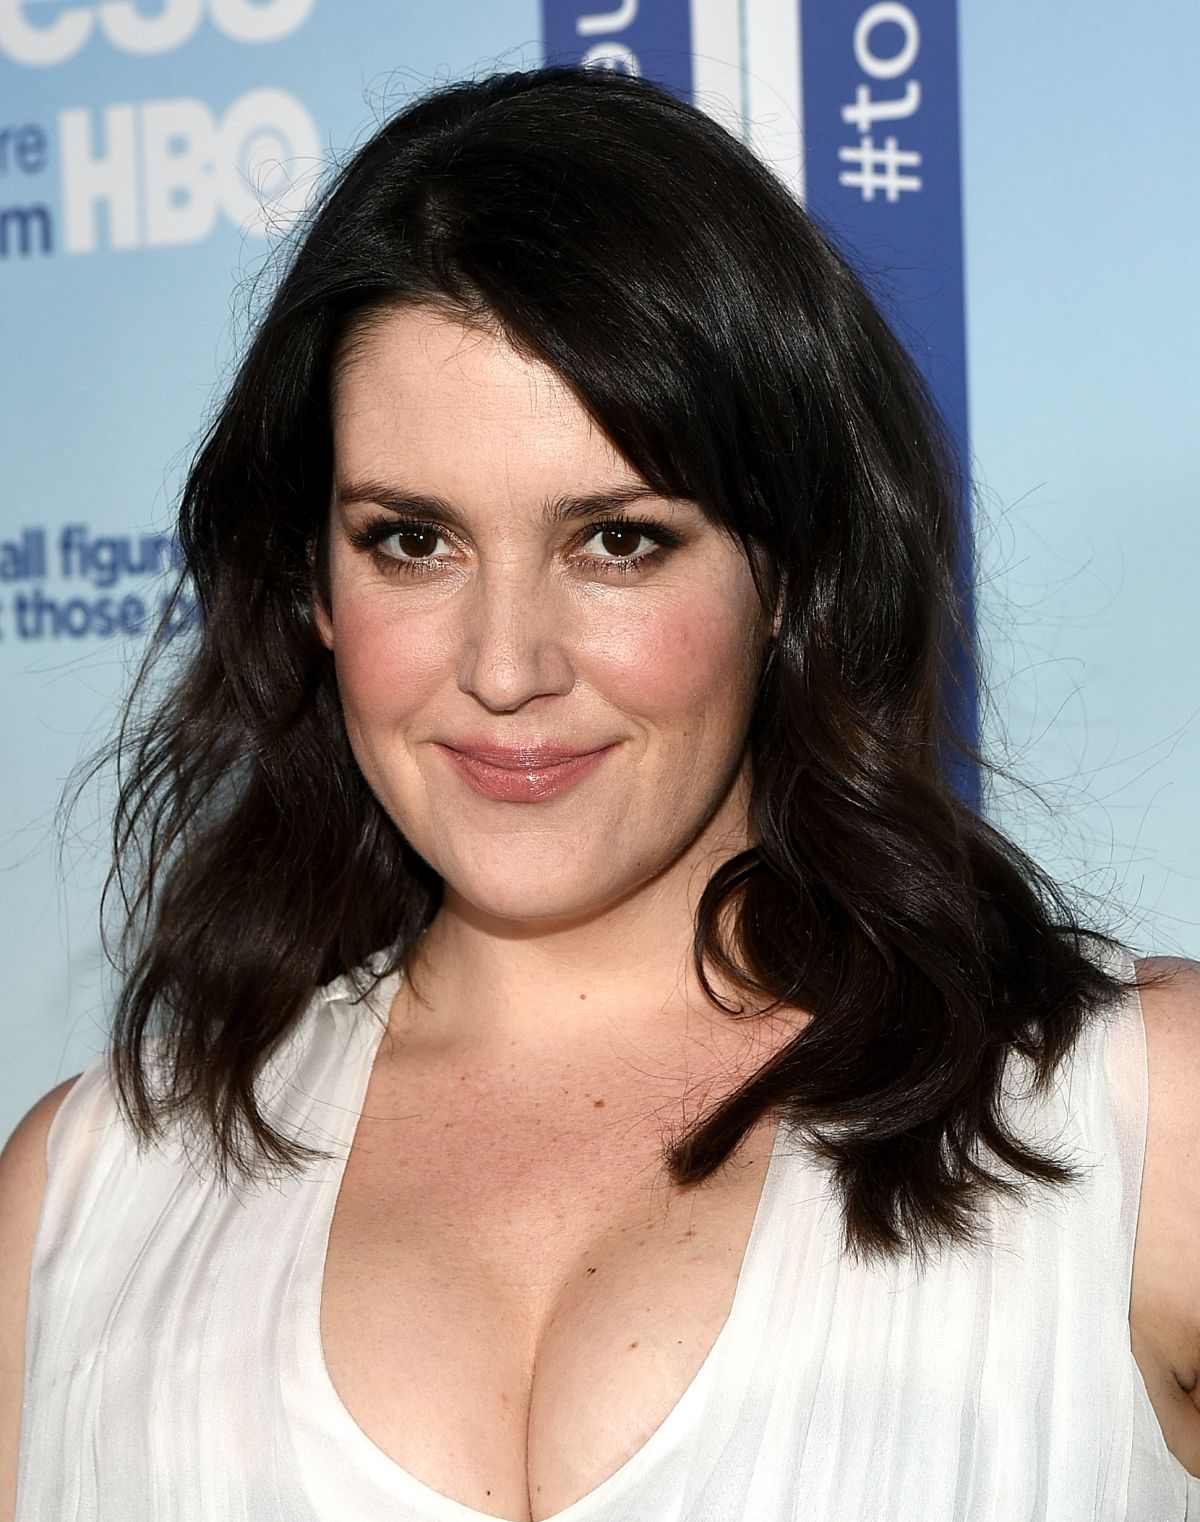 Photos Melanie Lynskey nudes (64 foto and video), Topless, Hot, Feet, cleavage 2019